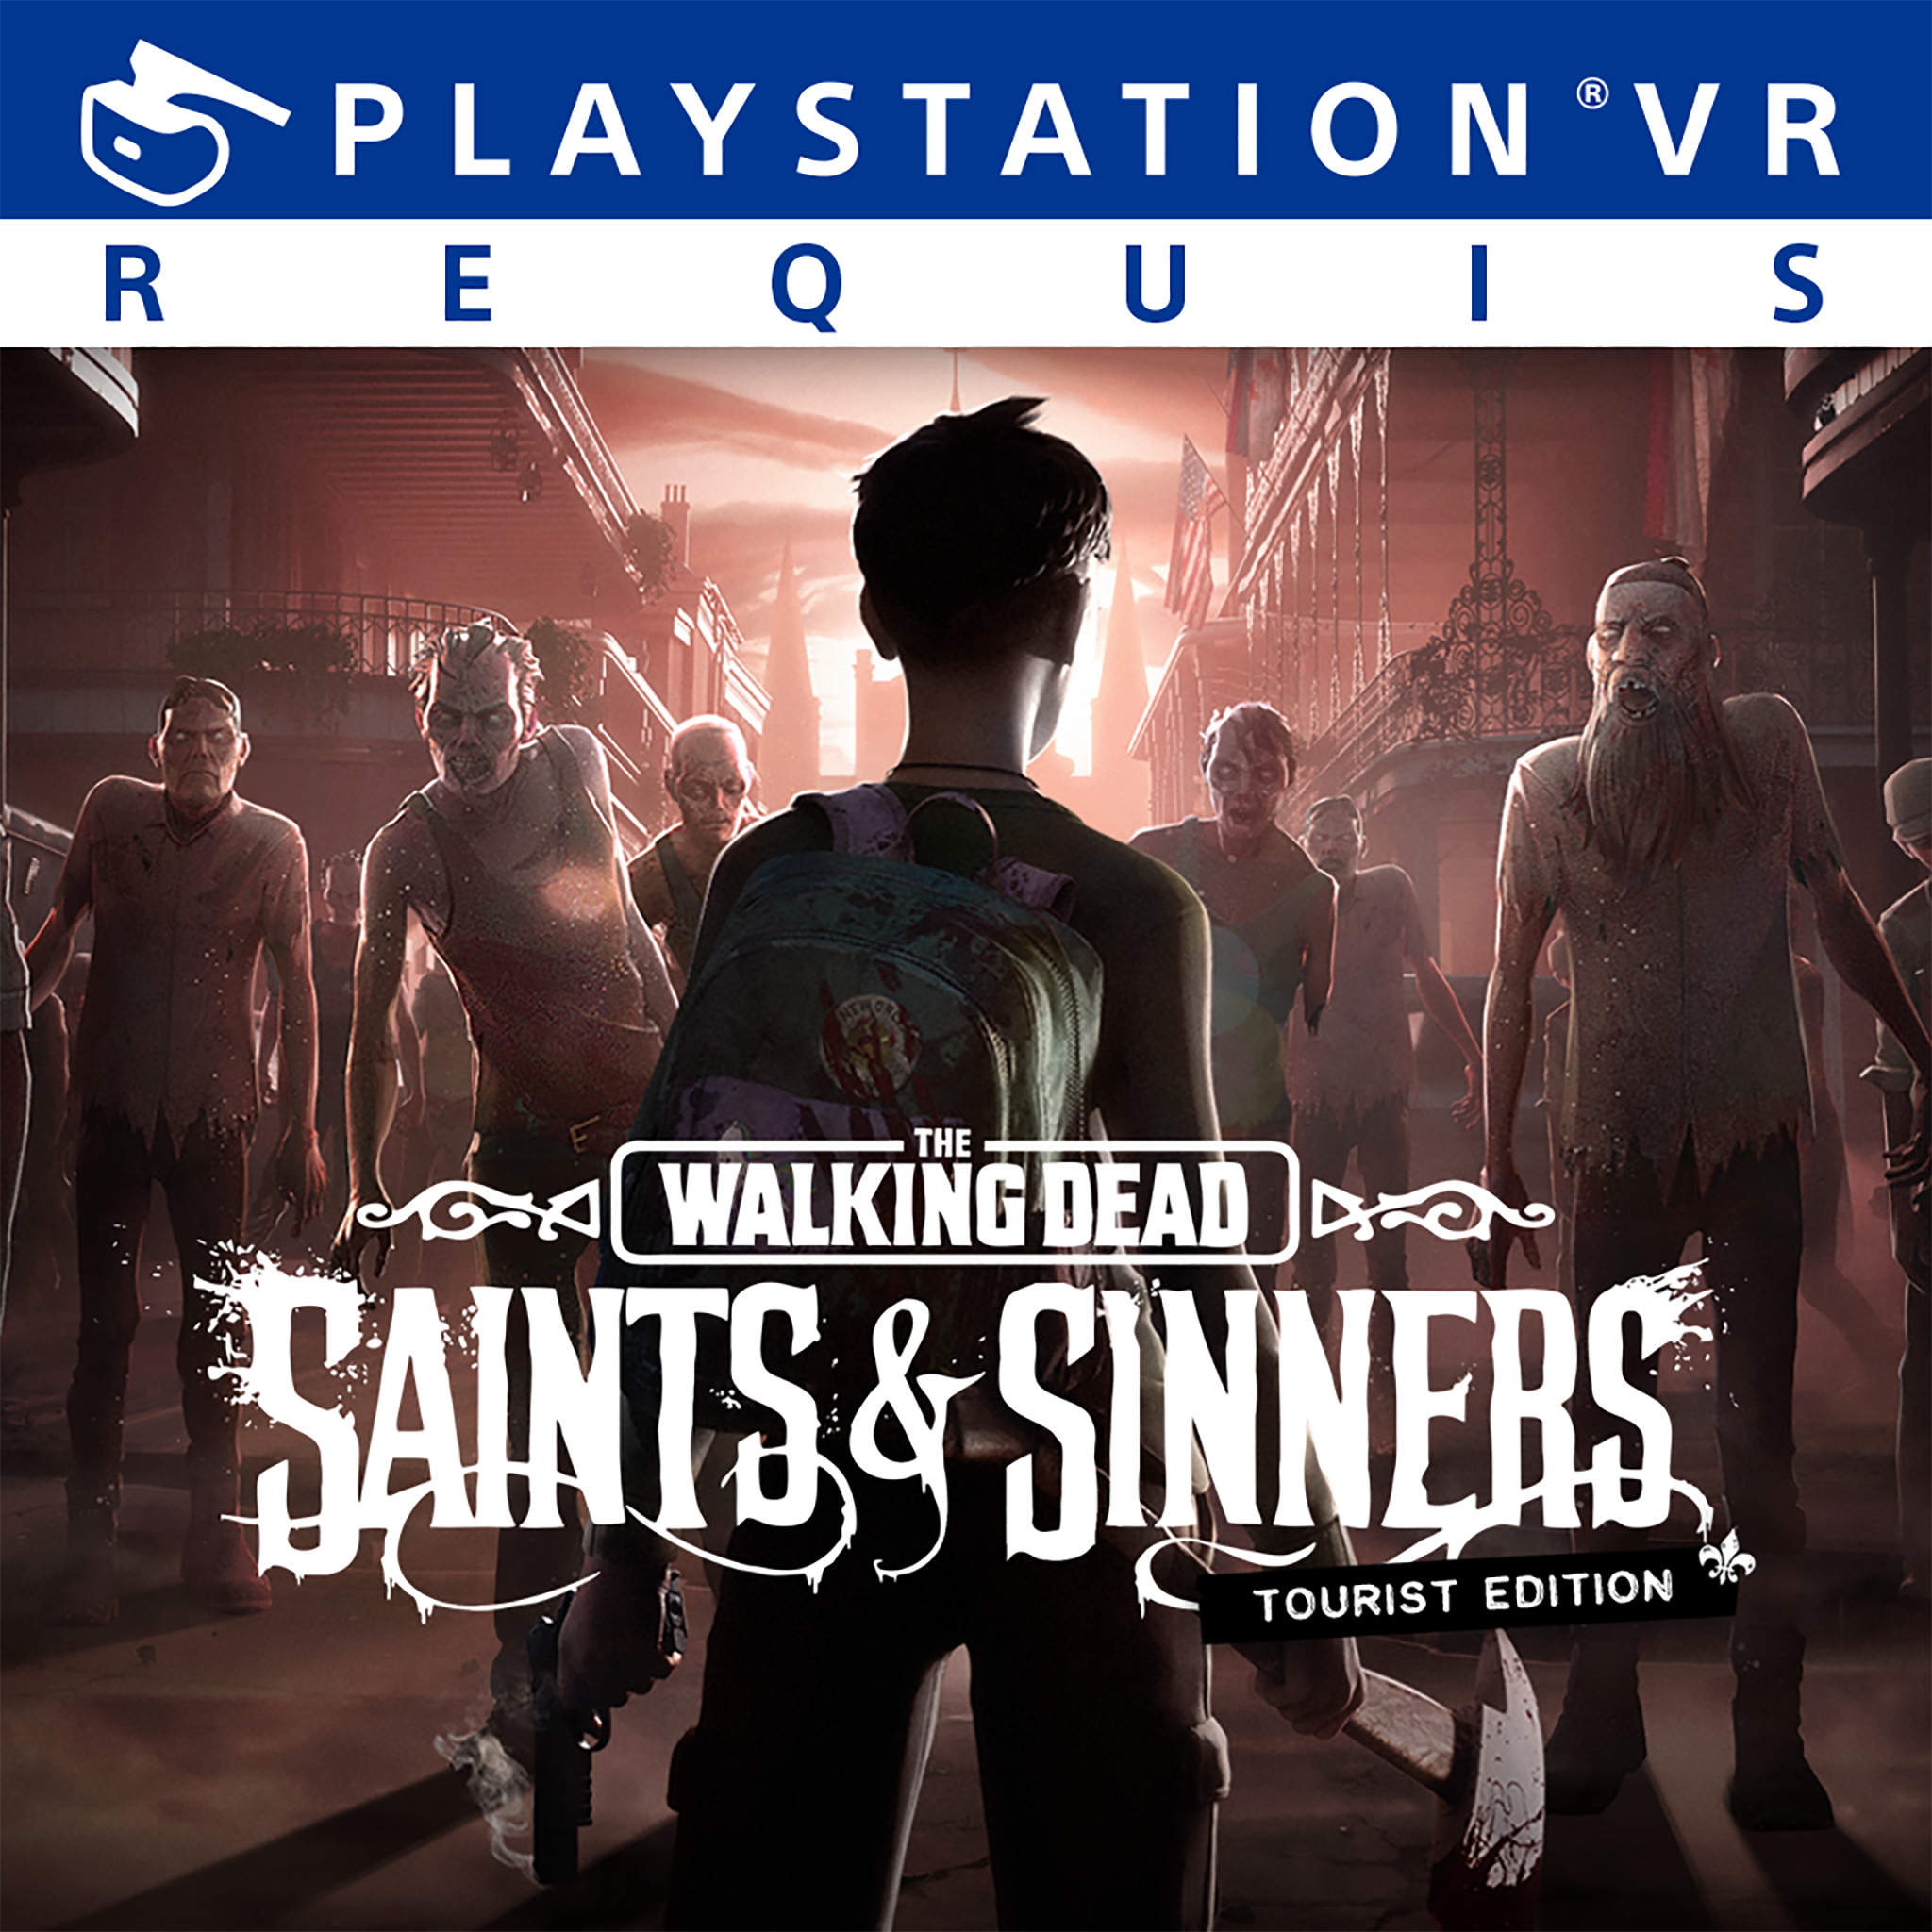 The Walking Dead: Saints & Sinners - Tourist Edition Upgrade